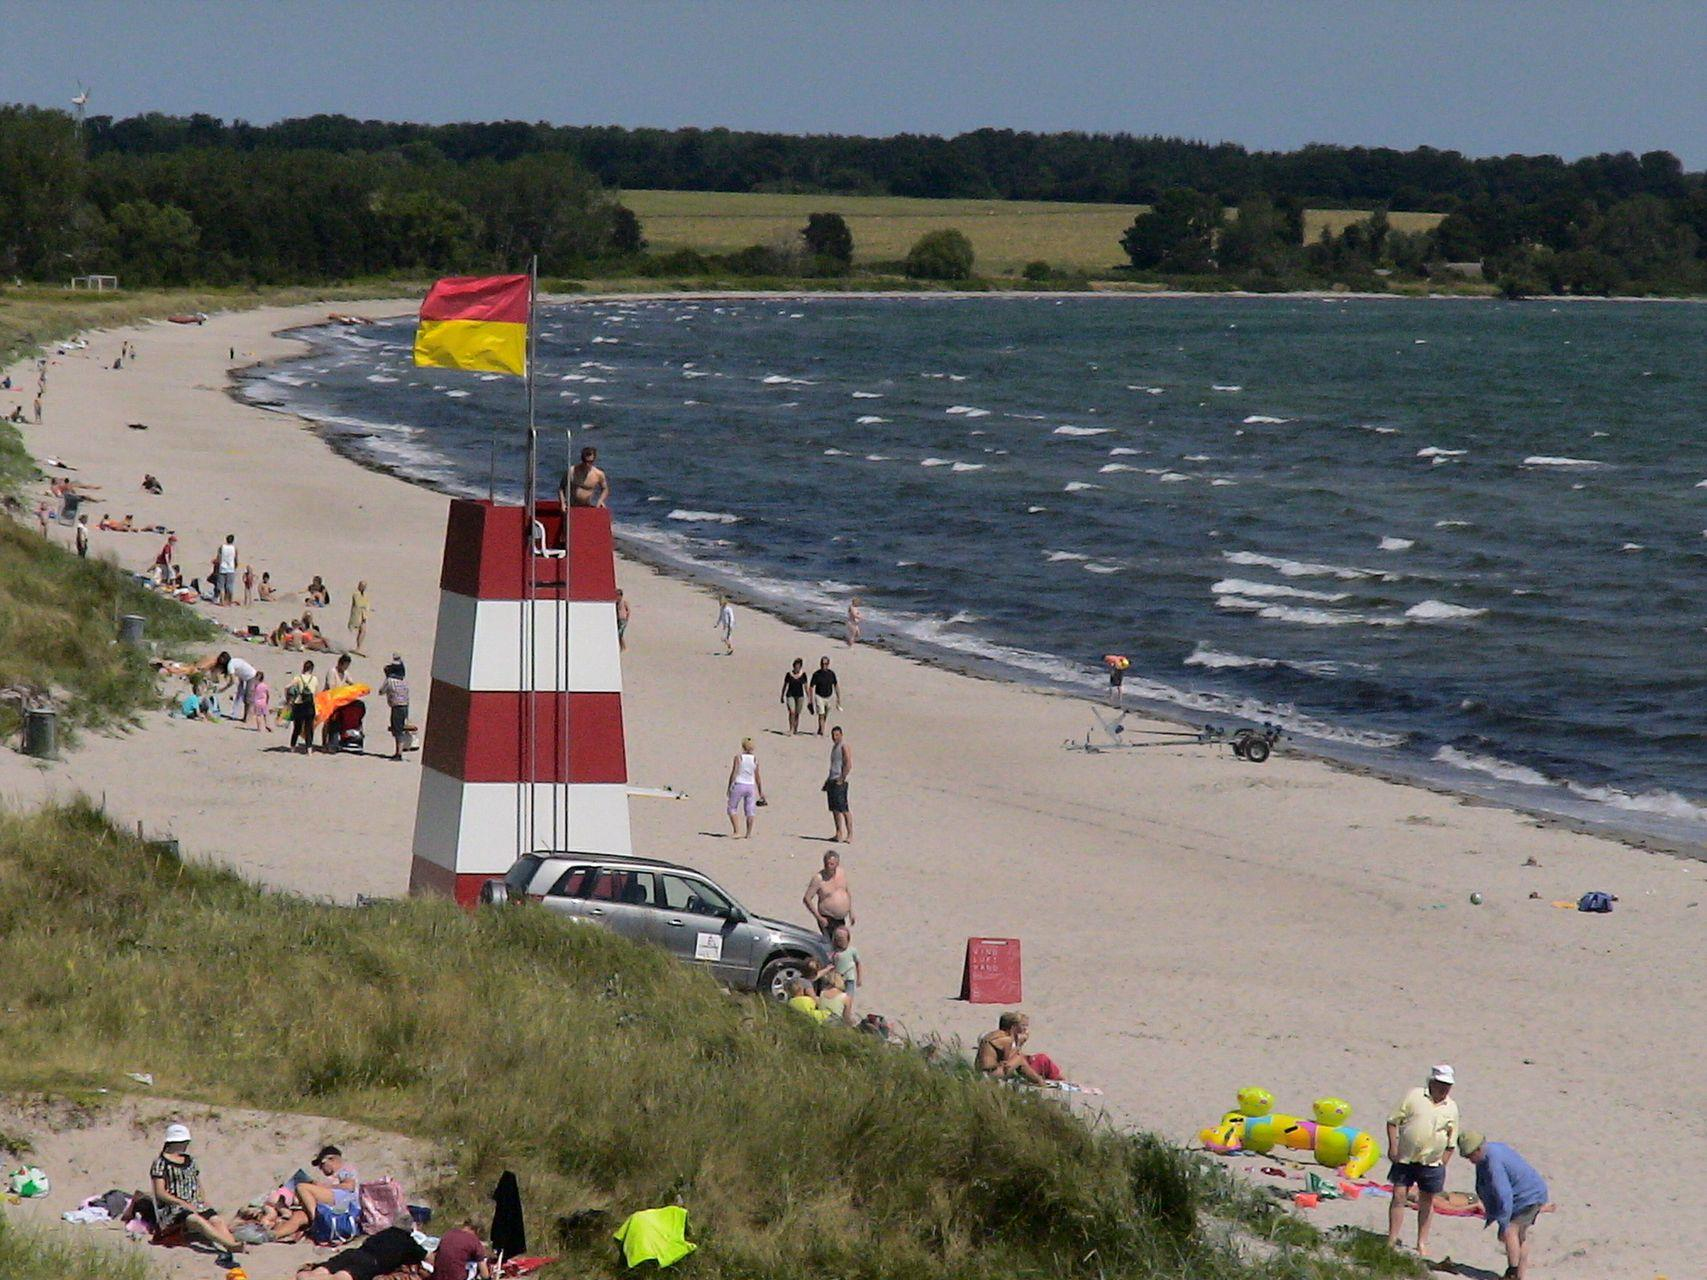 Plages Feddet Strand Camping & Feriepark - Faxe